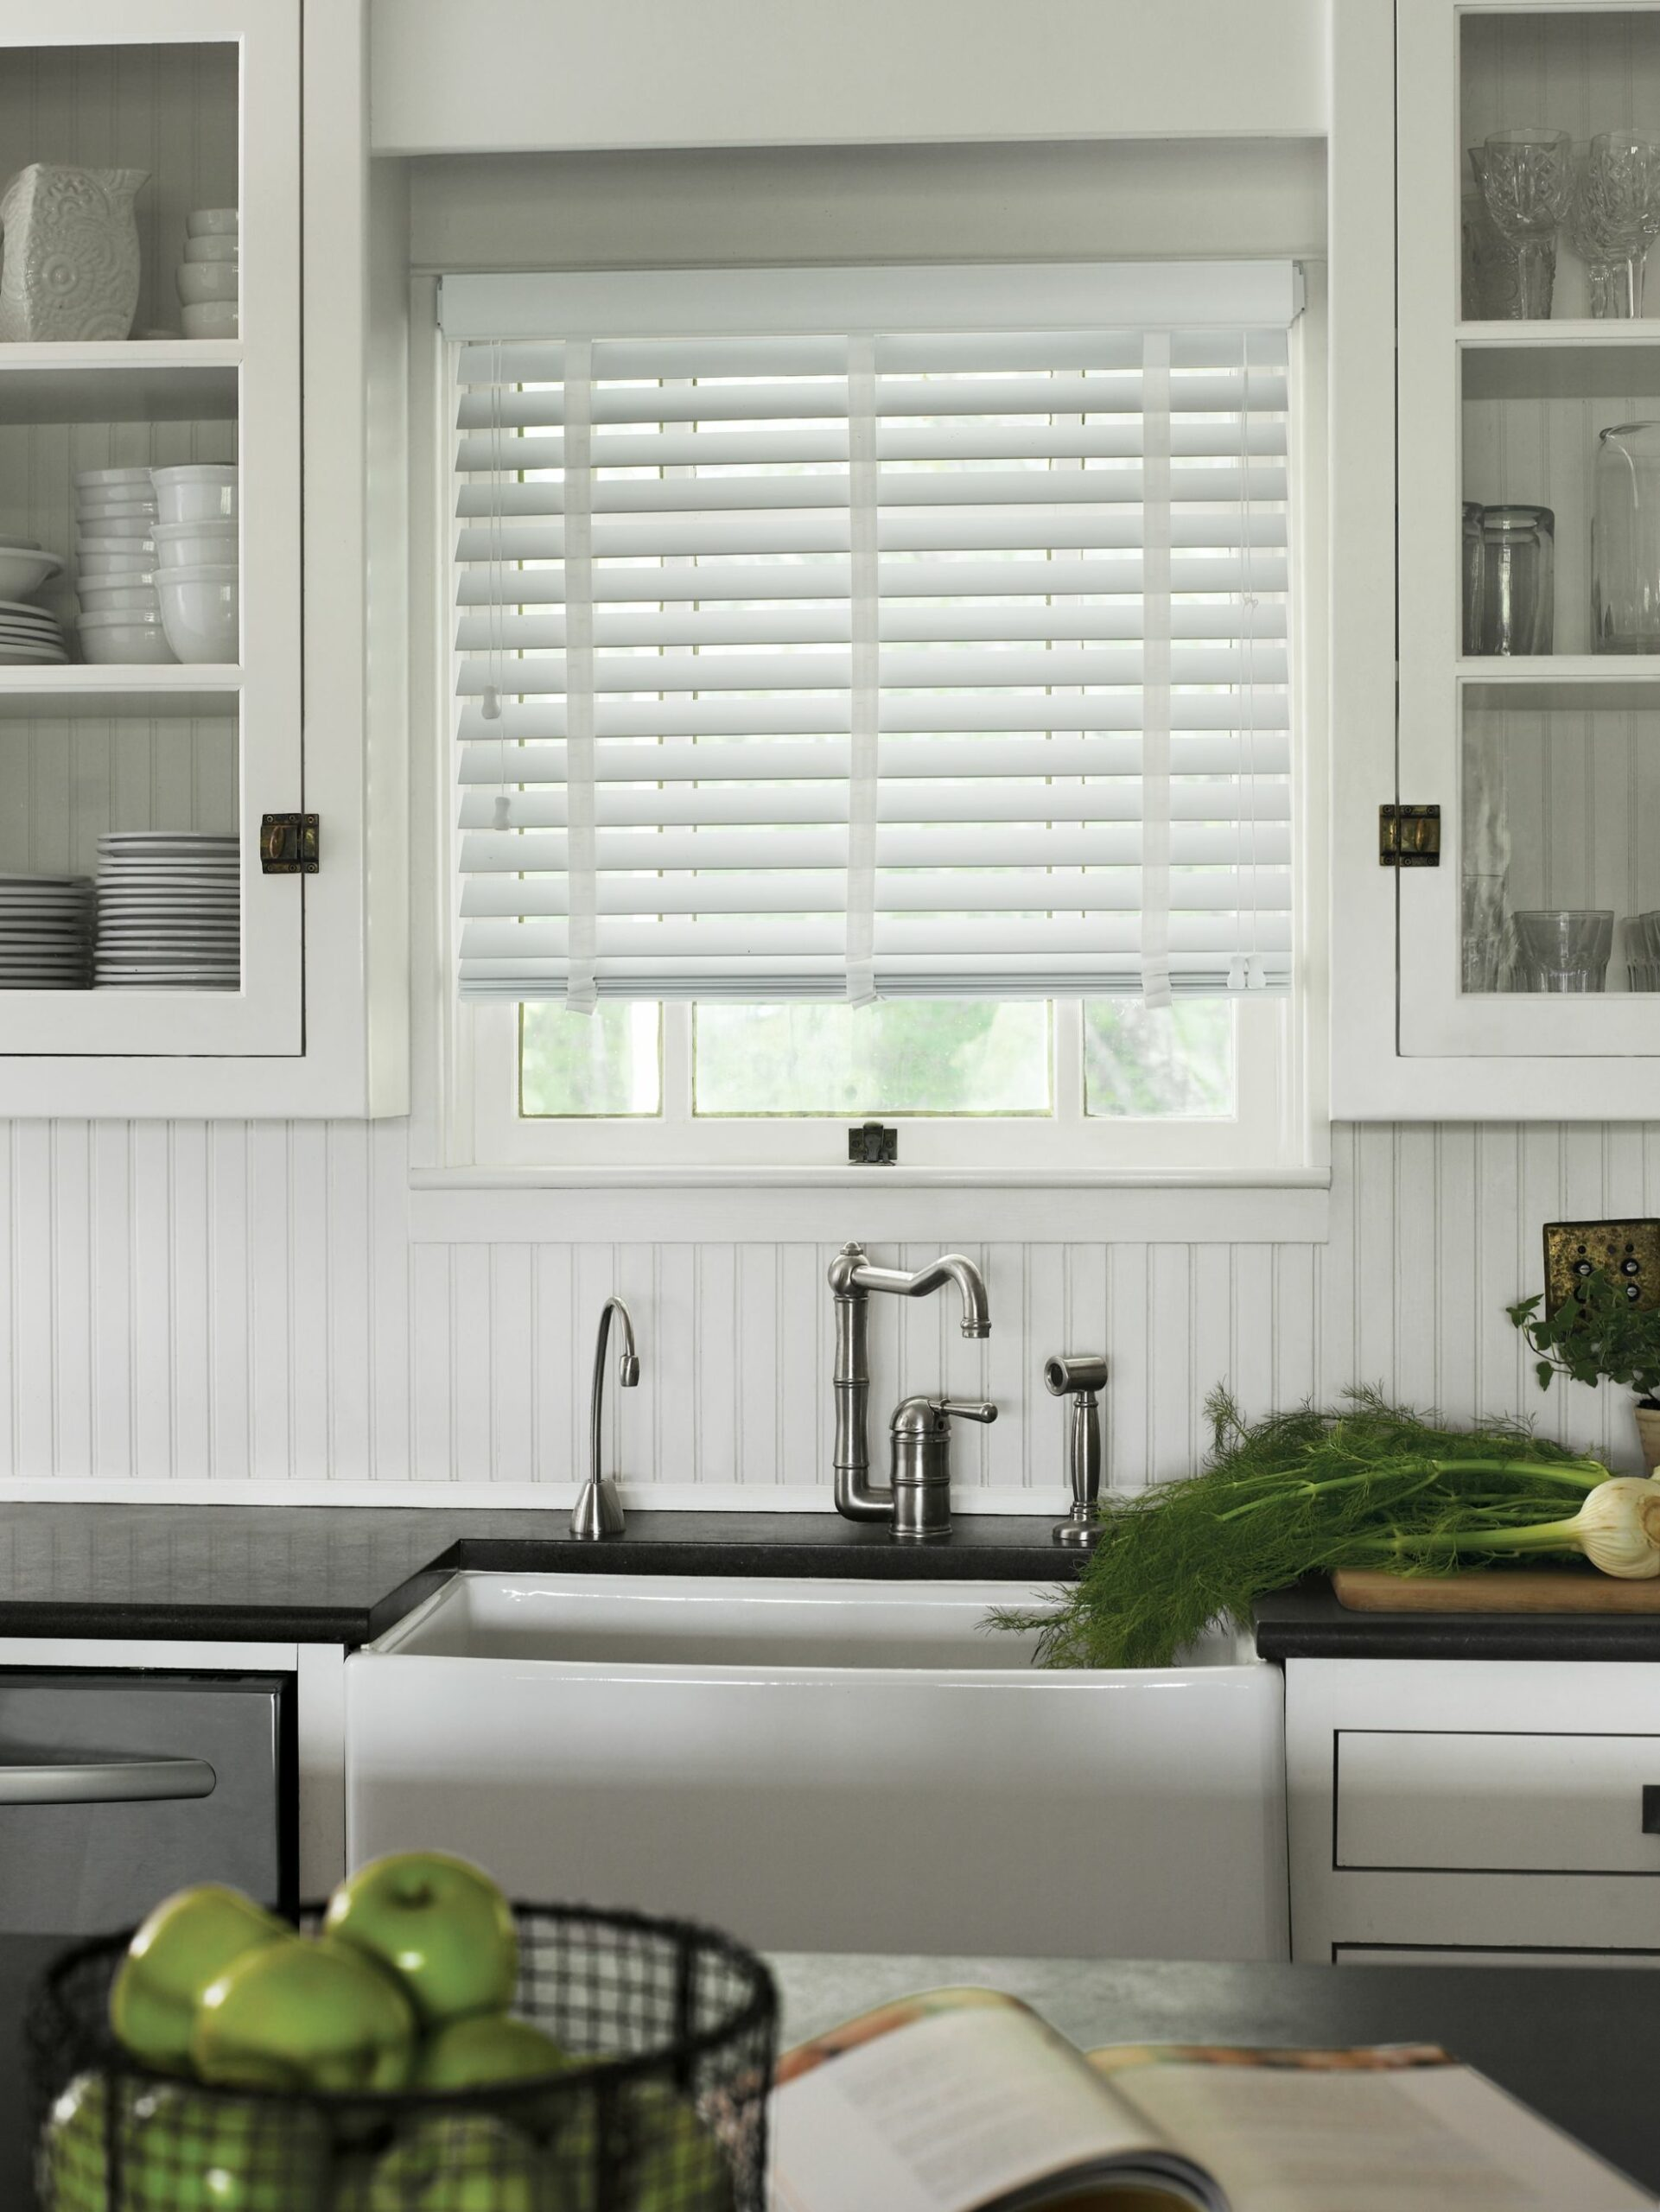 Picture of White Kitchen Sink Window Treatments